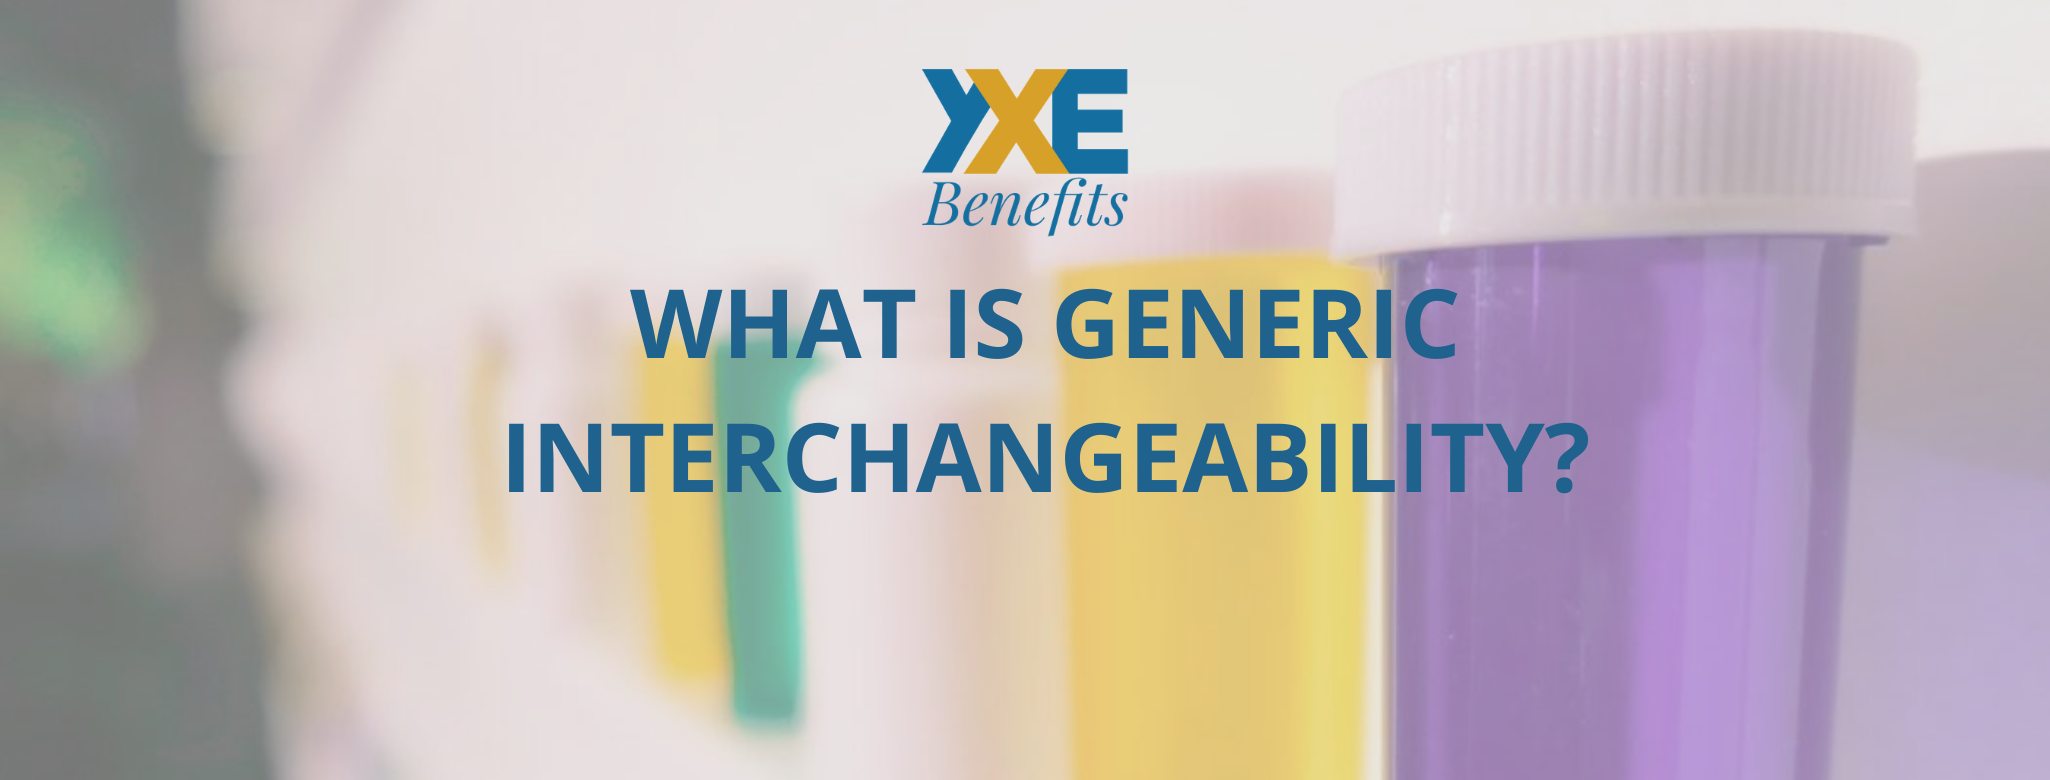 YXE Benefits: What is Generic Interchangeability?